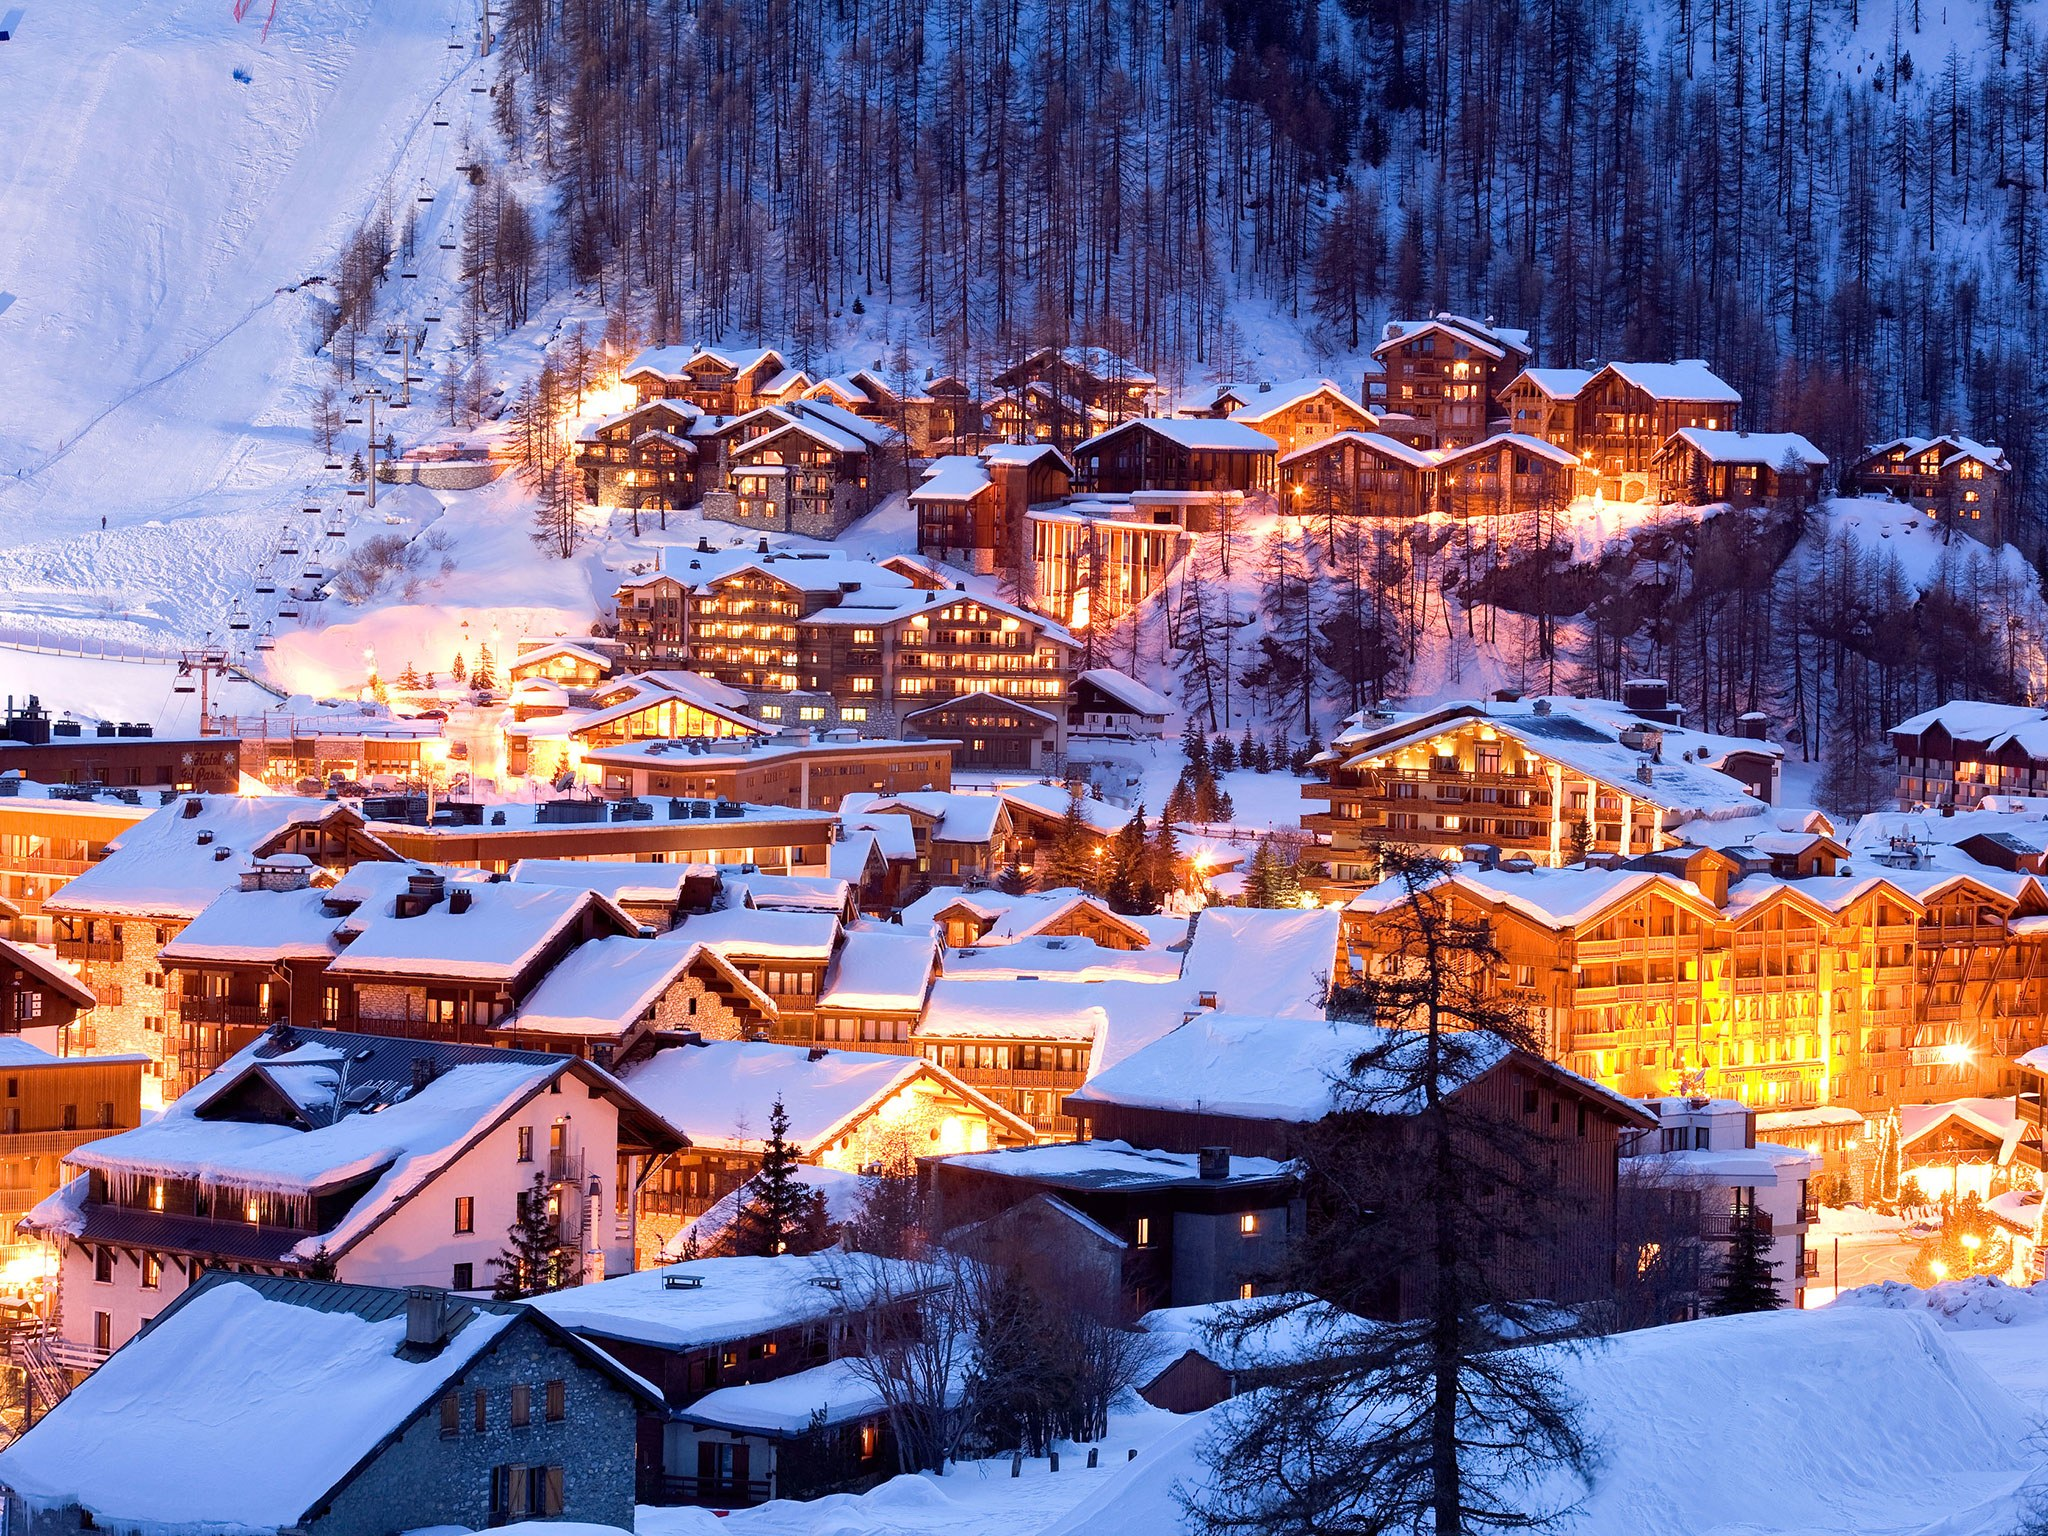 Grab Your Ski Gear and Hit the Slopes at 7 of the Best Ski Towns in the US!